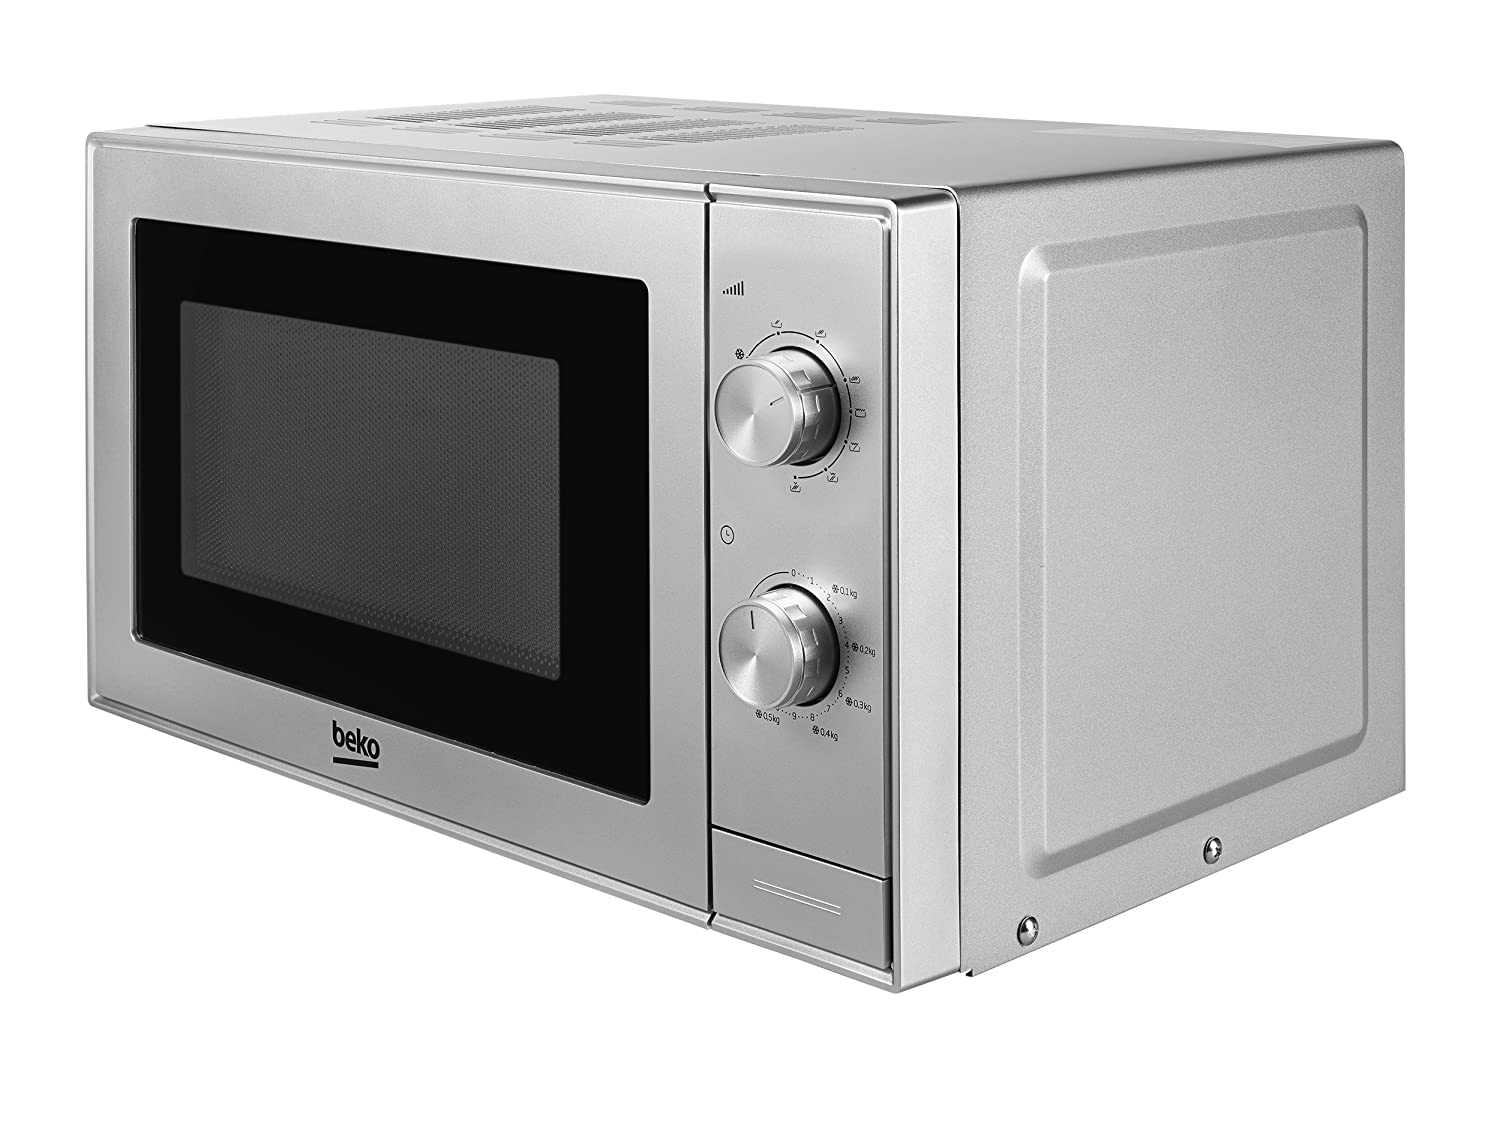 Beko MGC20100W Grill and Microwave, 20 Litre, 700 W, White [Energy Class A]